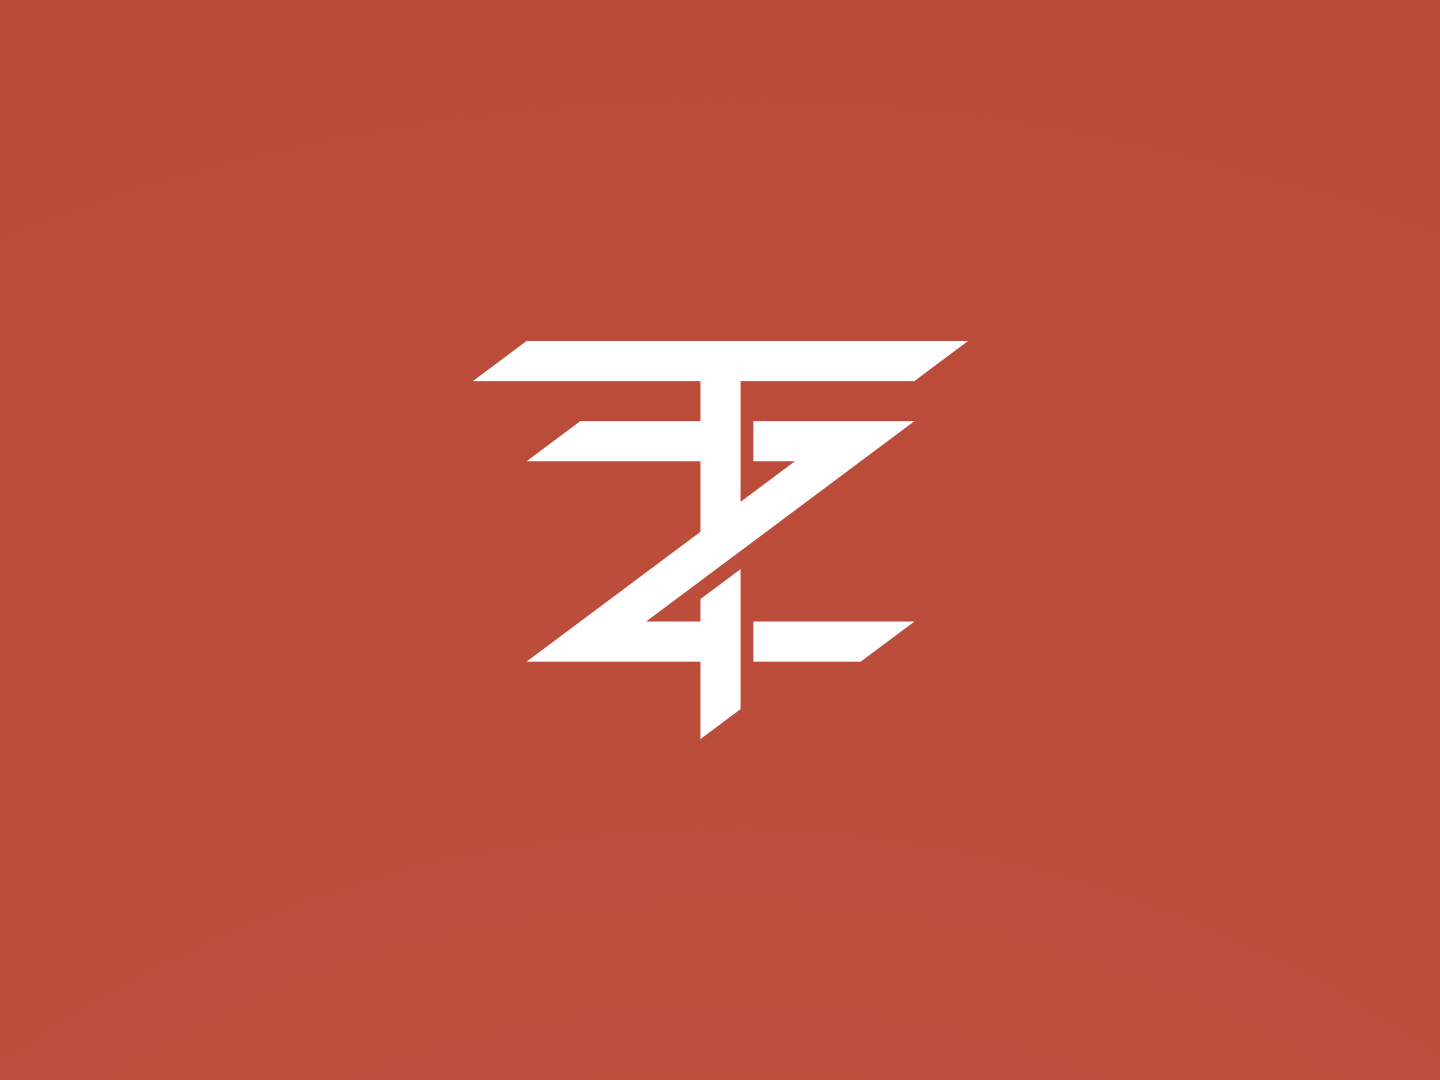 Team Zeal Monogram mark letterform brand team logo logo monogram esports team